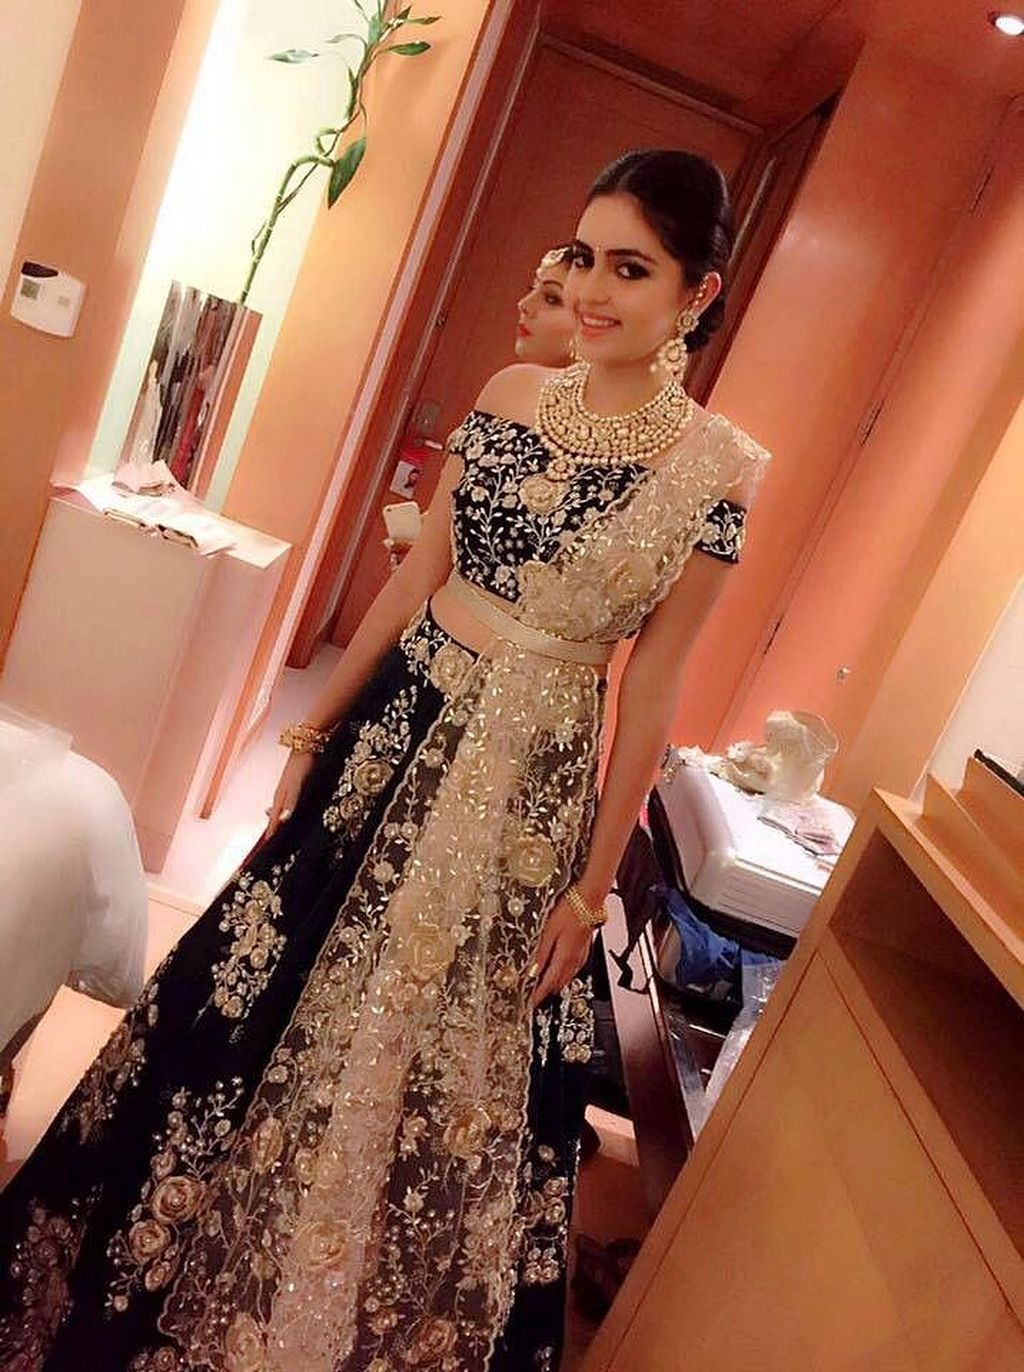 Dresses to wear to a wedding reception  Beautiful indian wedding reception ideas   Outfits  Pinterest